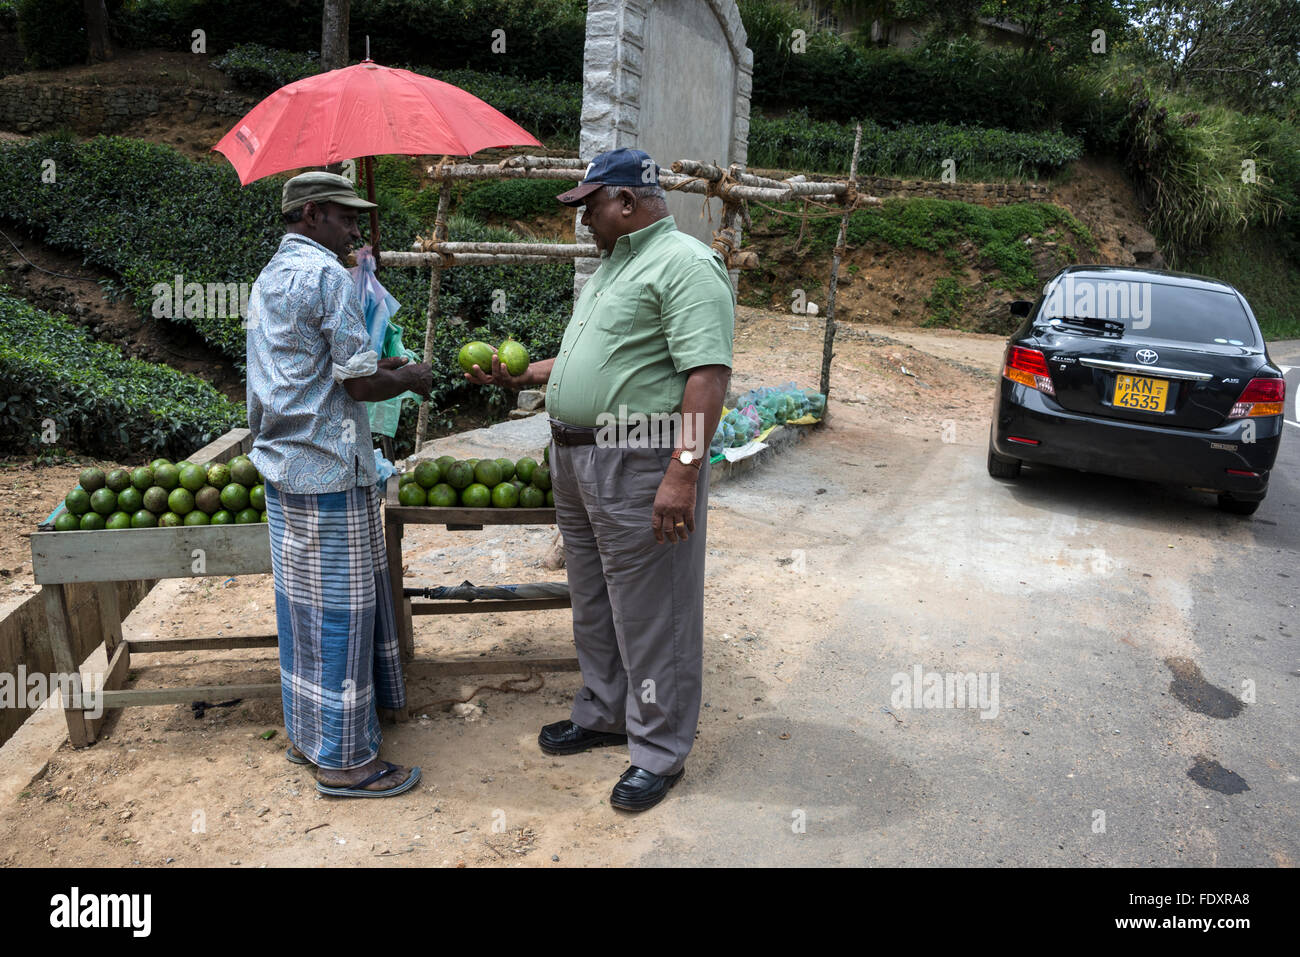 A Srli Lankan motorist stops to buy a bag of locally produced avocados at a roadside stall on the Hatton-Talawakele Stock Photo